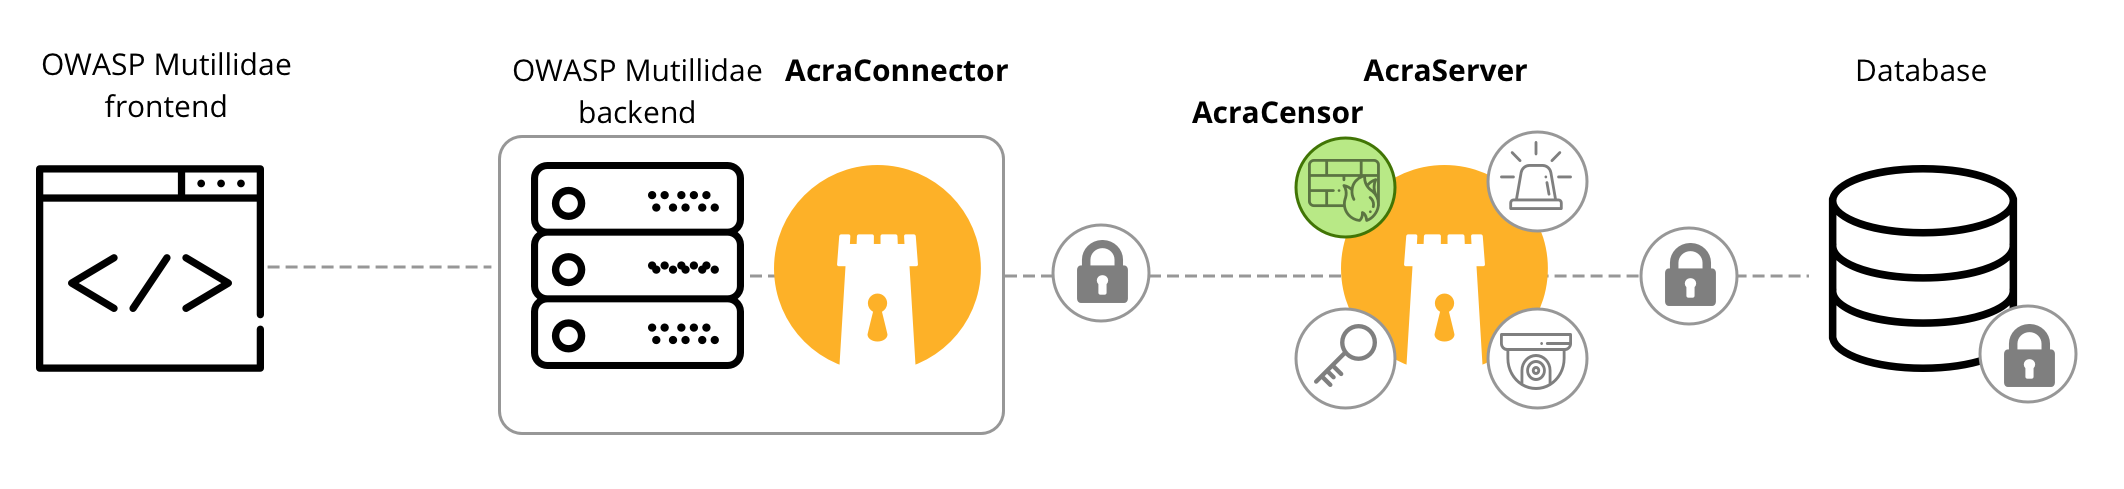 Protecting OWASP web application: Acra architecture with AcraCensor